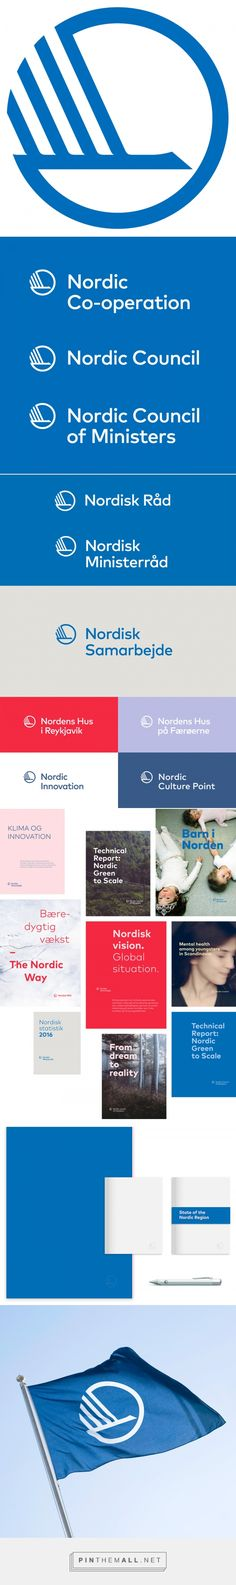 Brand New: New Logo and Identity for Nordic Co-operation by Kontrapunkt... - a grouped images picture - Pin Them All